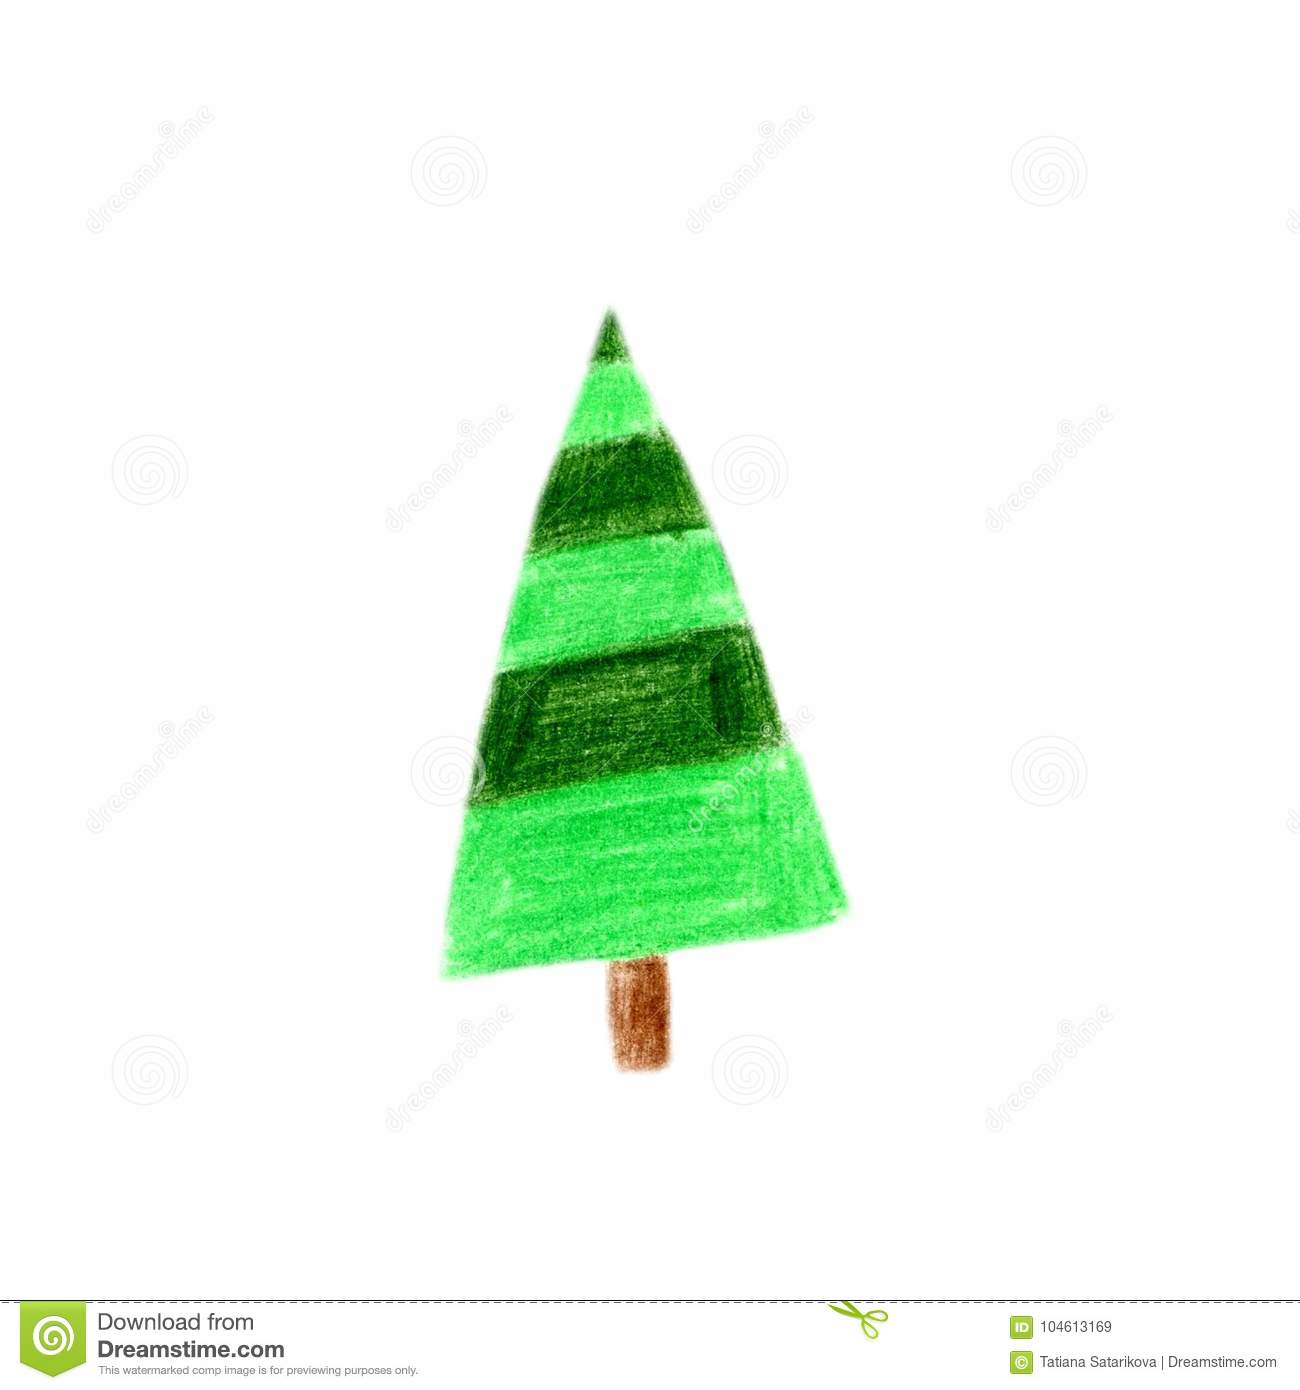 Crayon Child S Drawing Of Merry Christmas Tree Color Pencils Hand